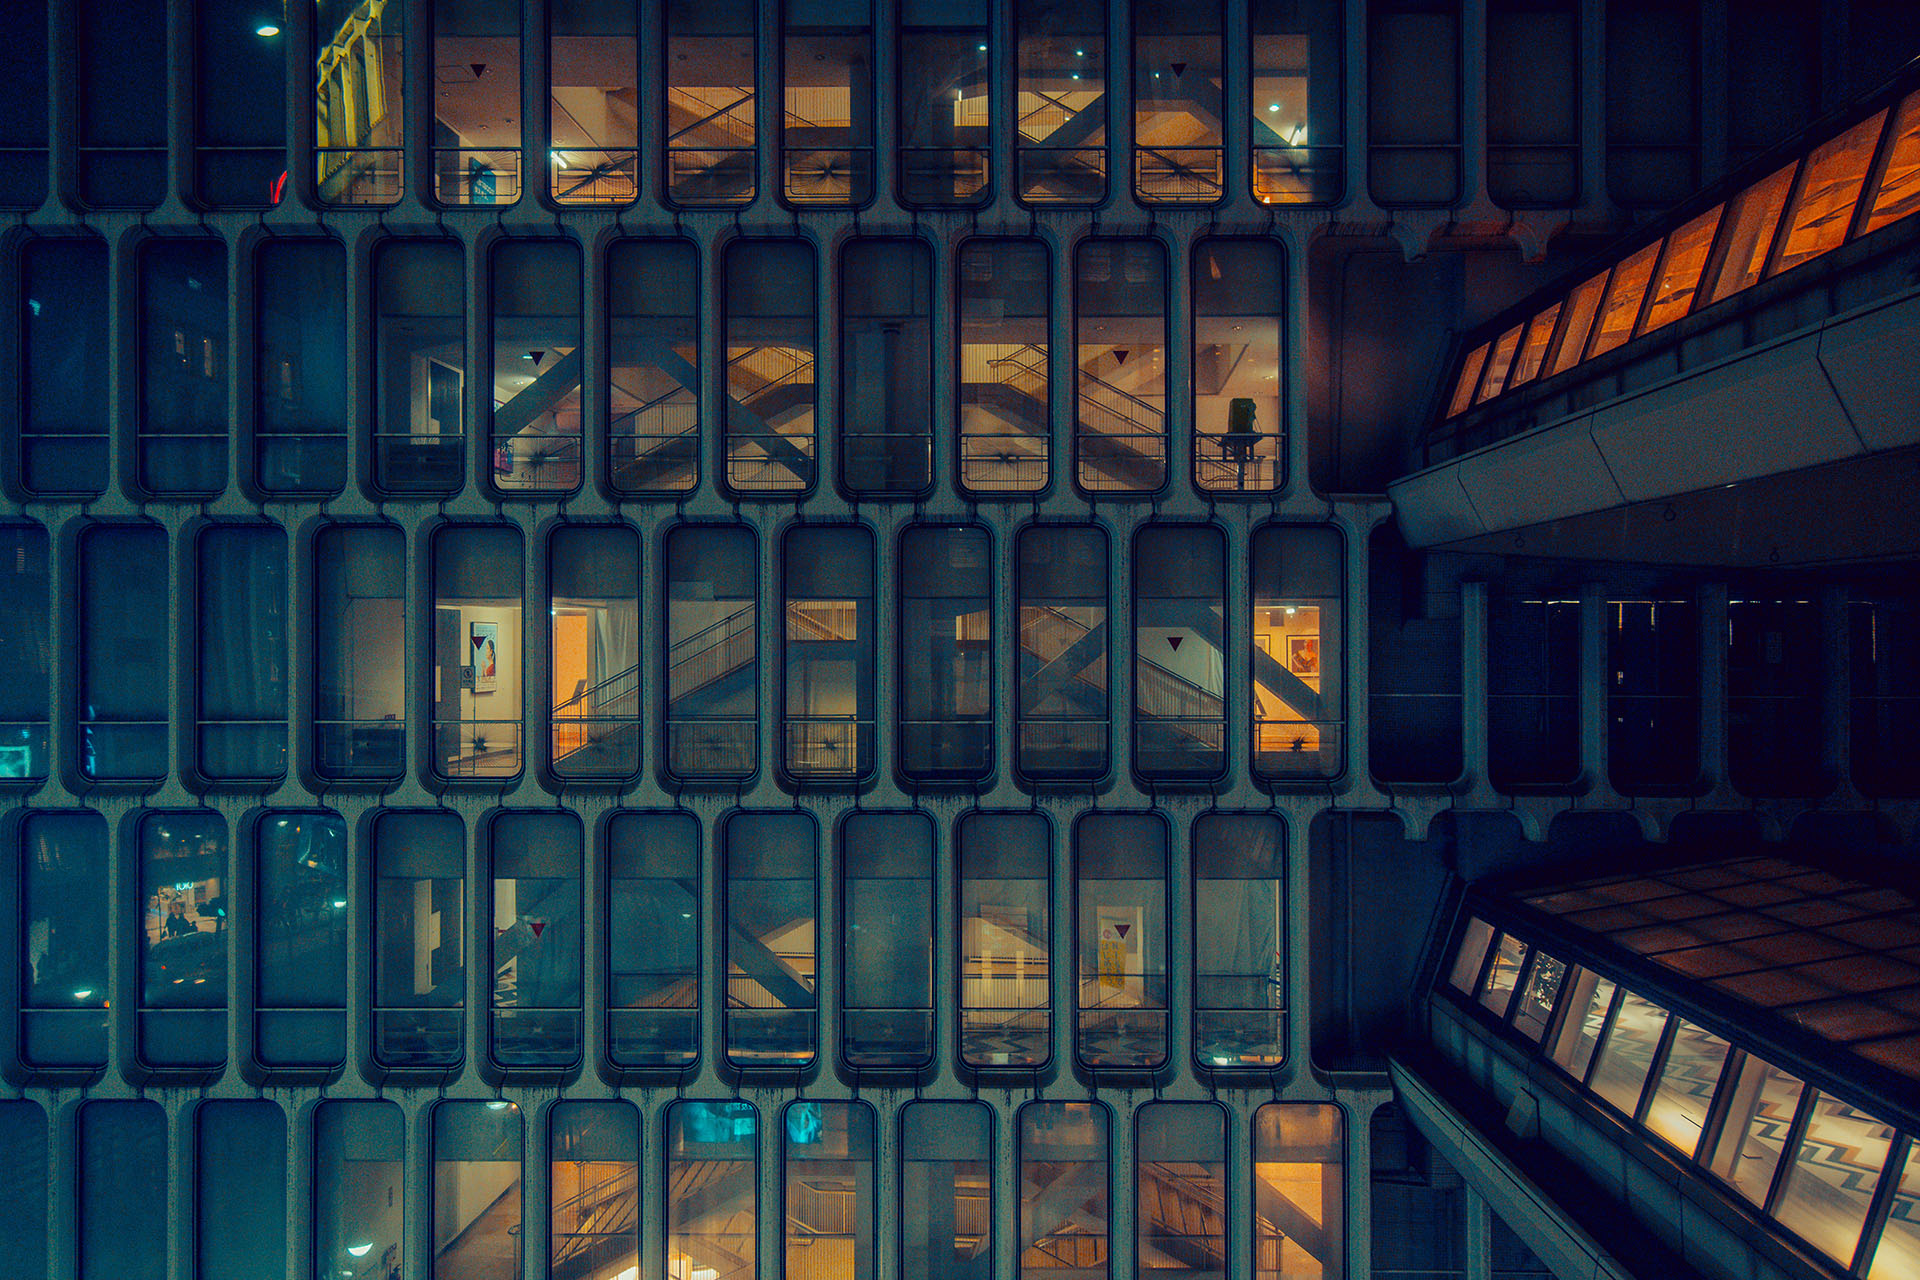 TOKYO NIGHTS - View the Series ▸